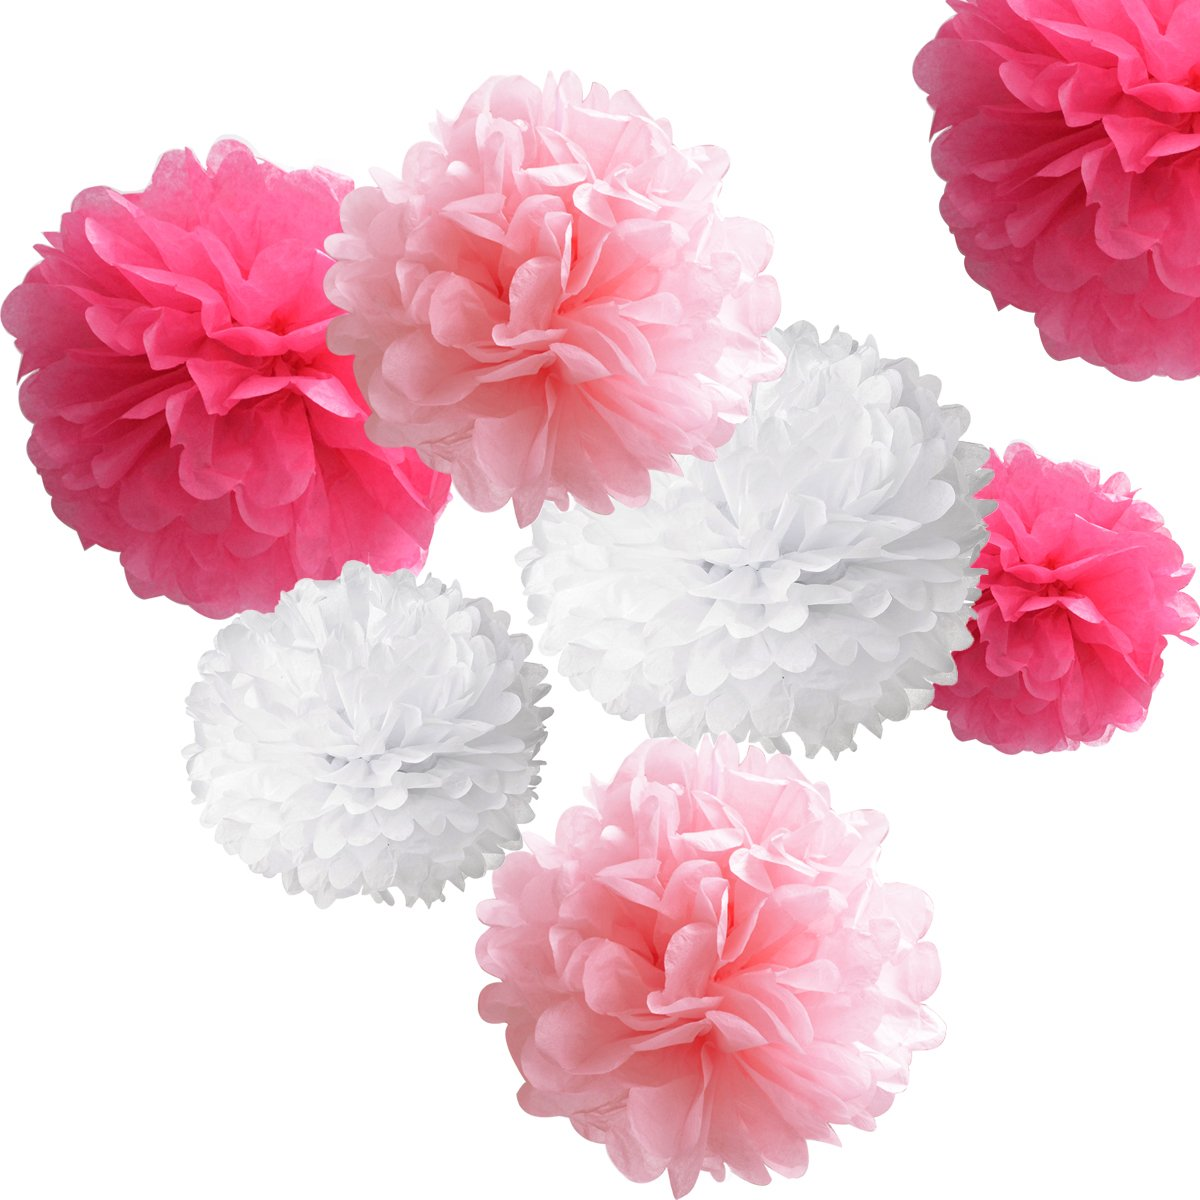 18pcs Tissue Hanging Paper Pom-poms, Hmxpls Flower Ball Wedding Party Outdoor Decoration Premium Tissue Paper Pom Pom Flowers Craft Kit ( Blue & White), 8